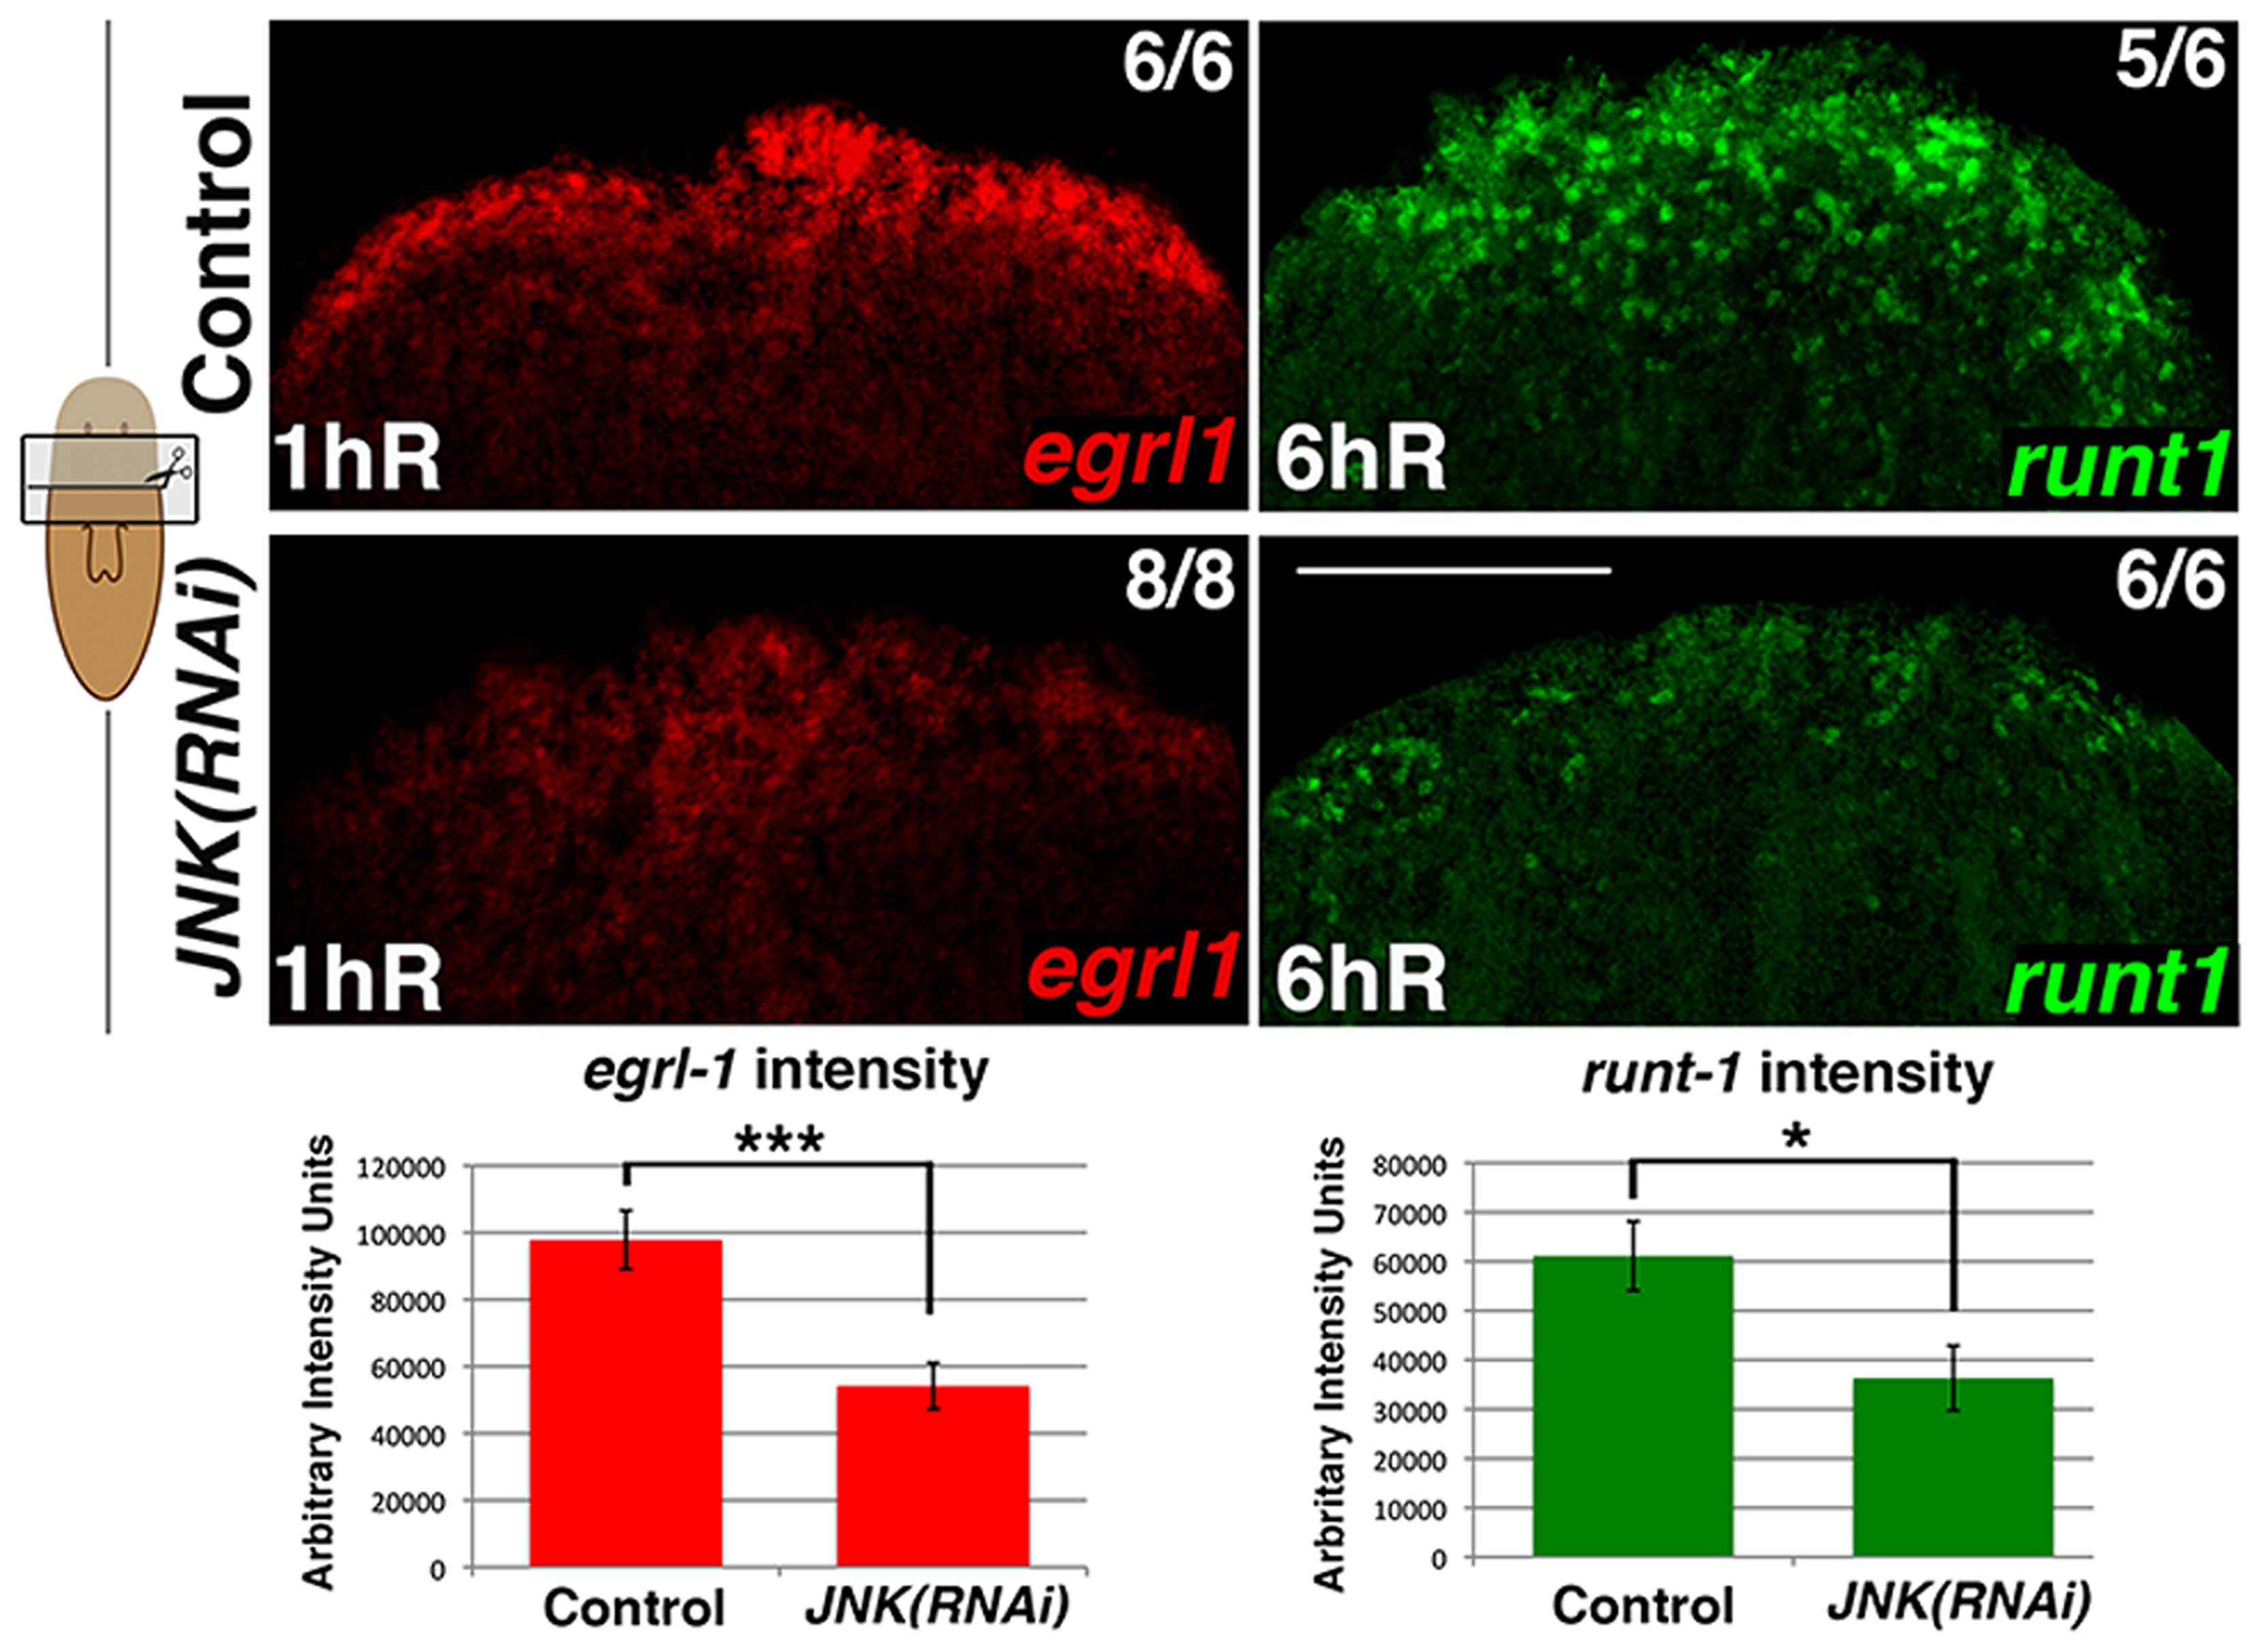 JNK modulates early wound-induced gene expression.